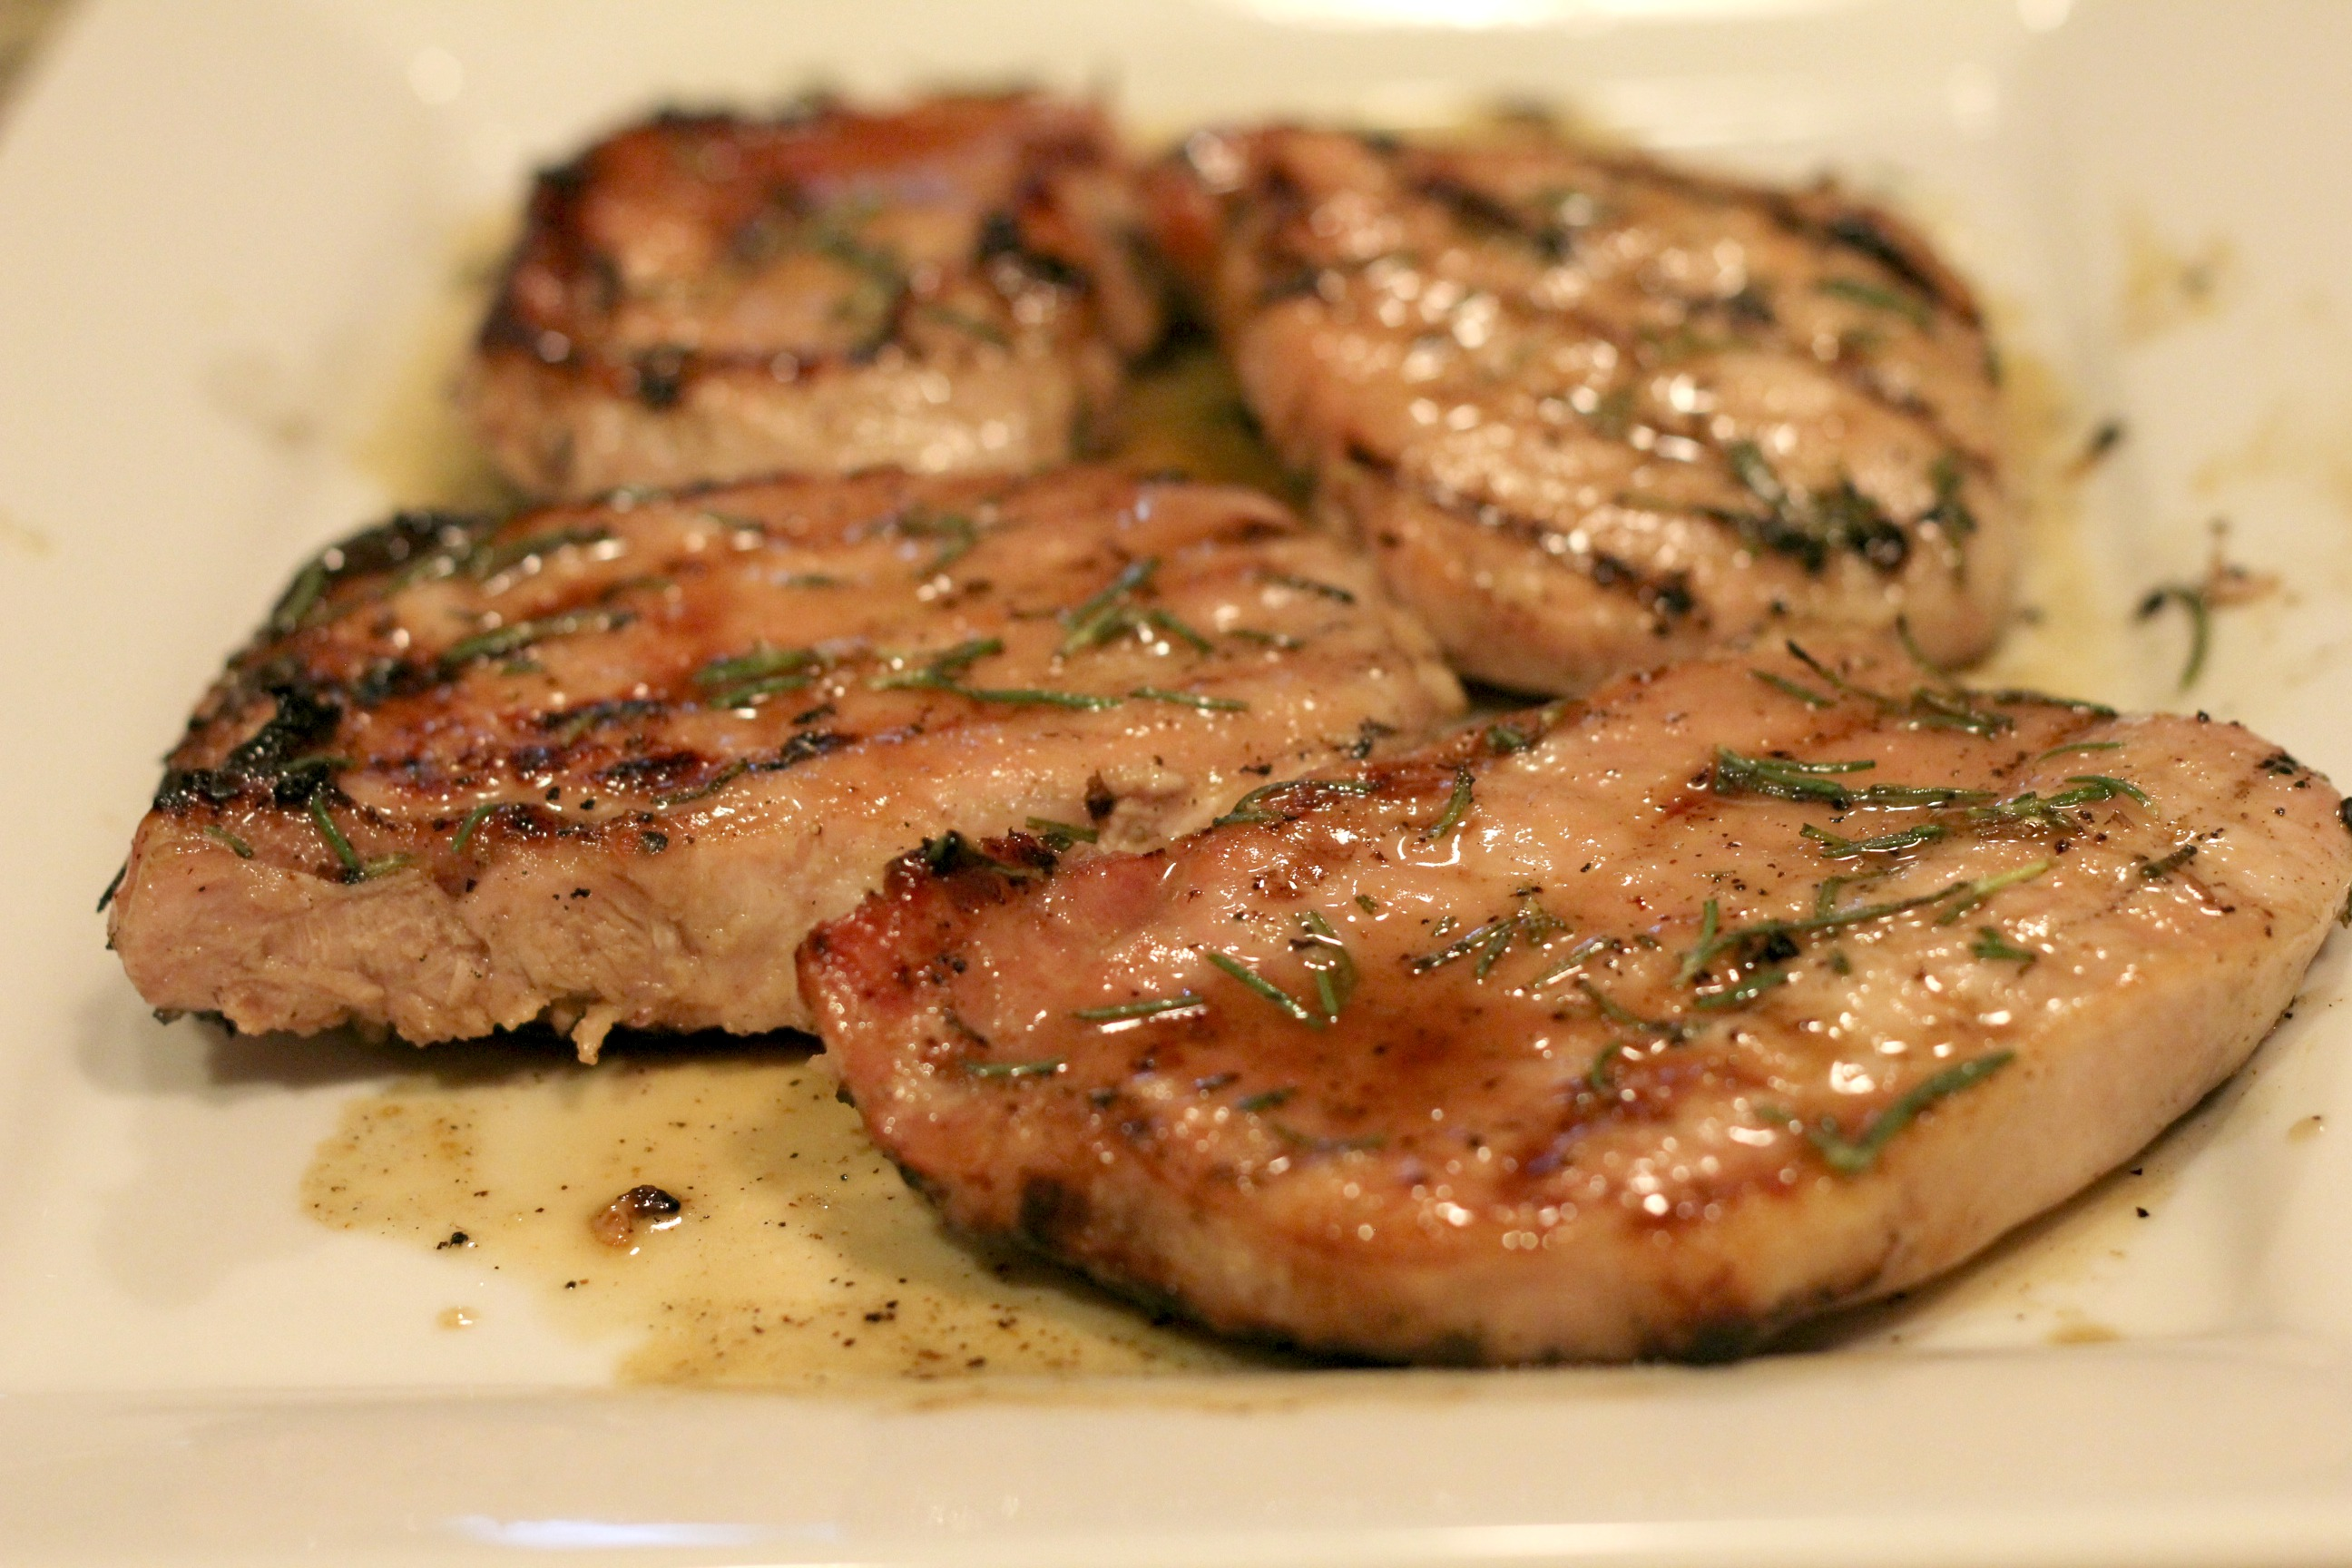 Grilled Honey Rosemary Pork Chops